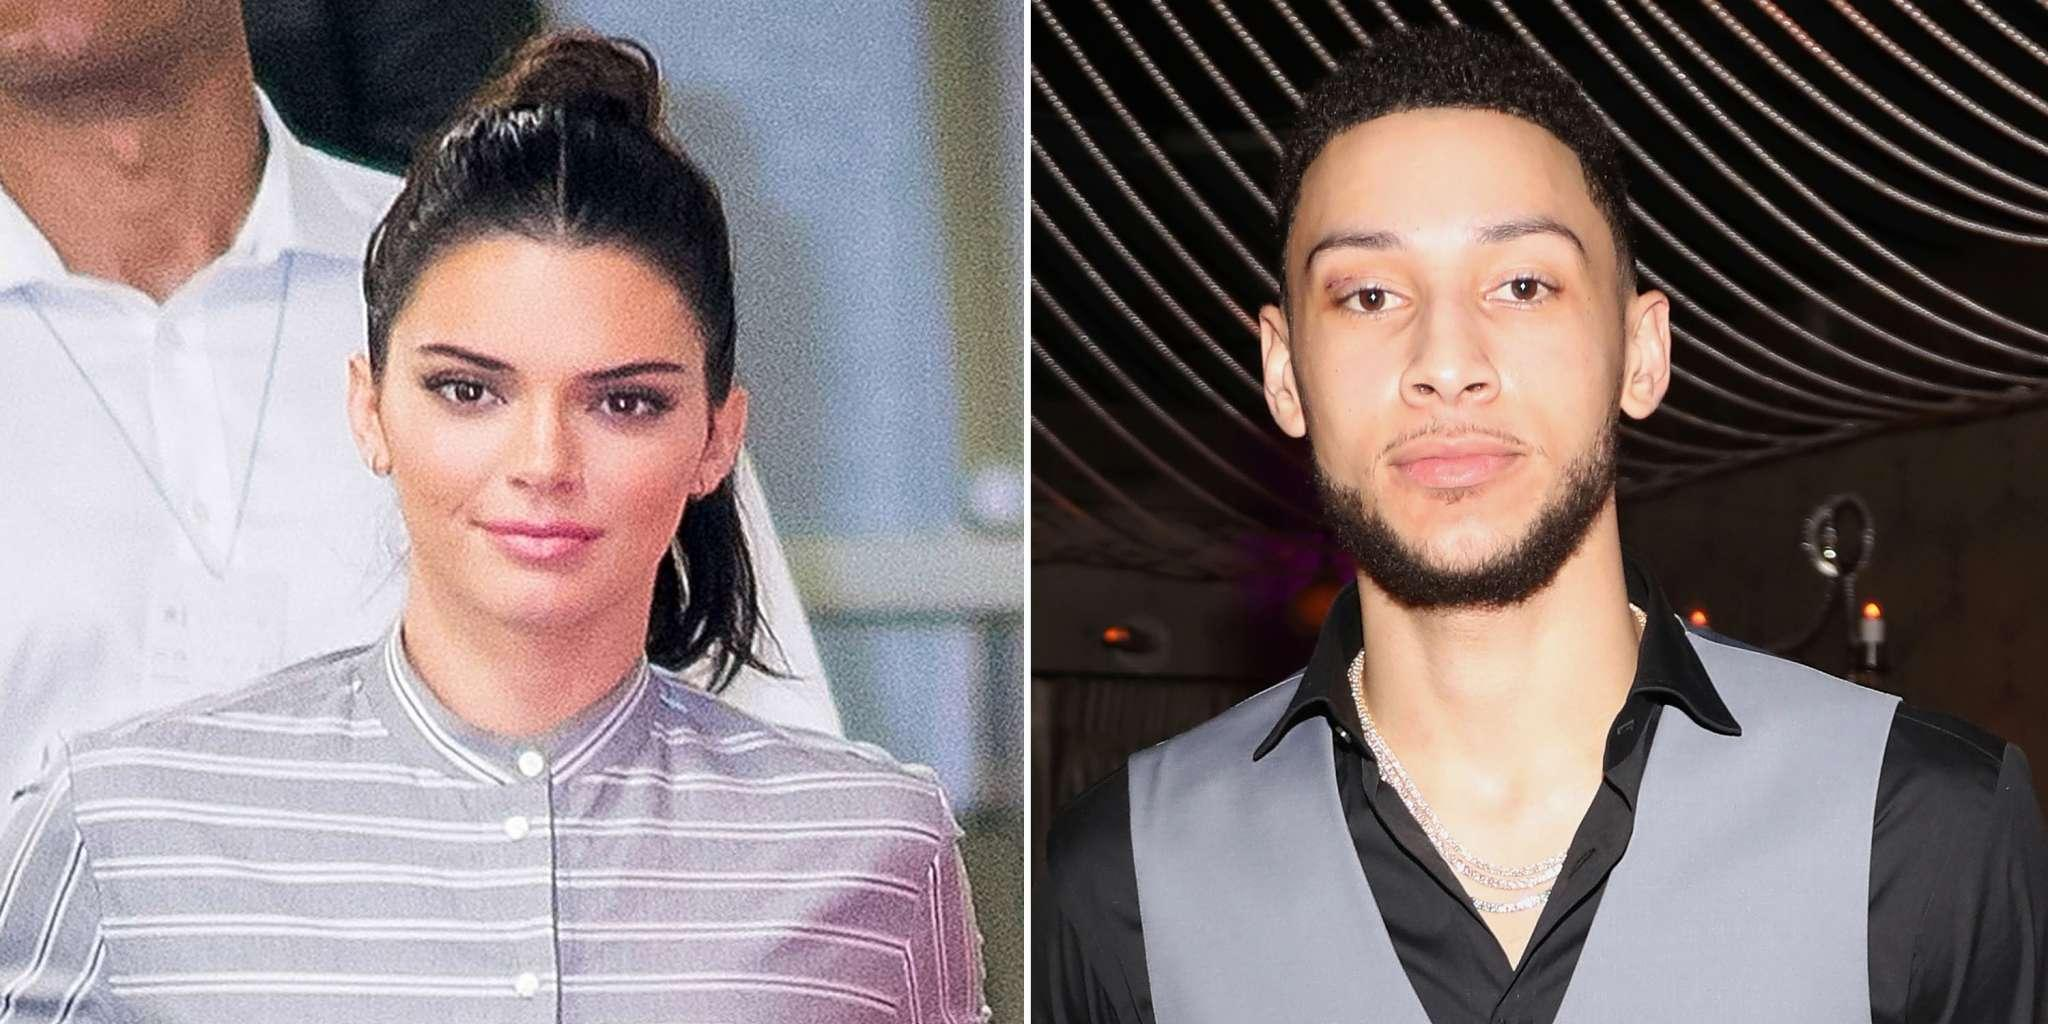 KUWK: Kendall Jenner And Ben Simmons Are 'Getting Serious' - To Spend The New Year's Eve Together And More!